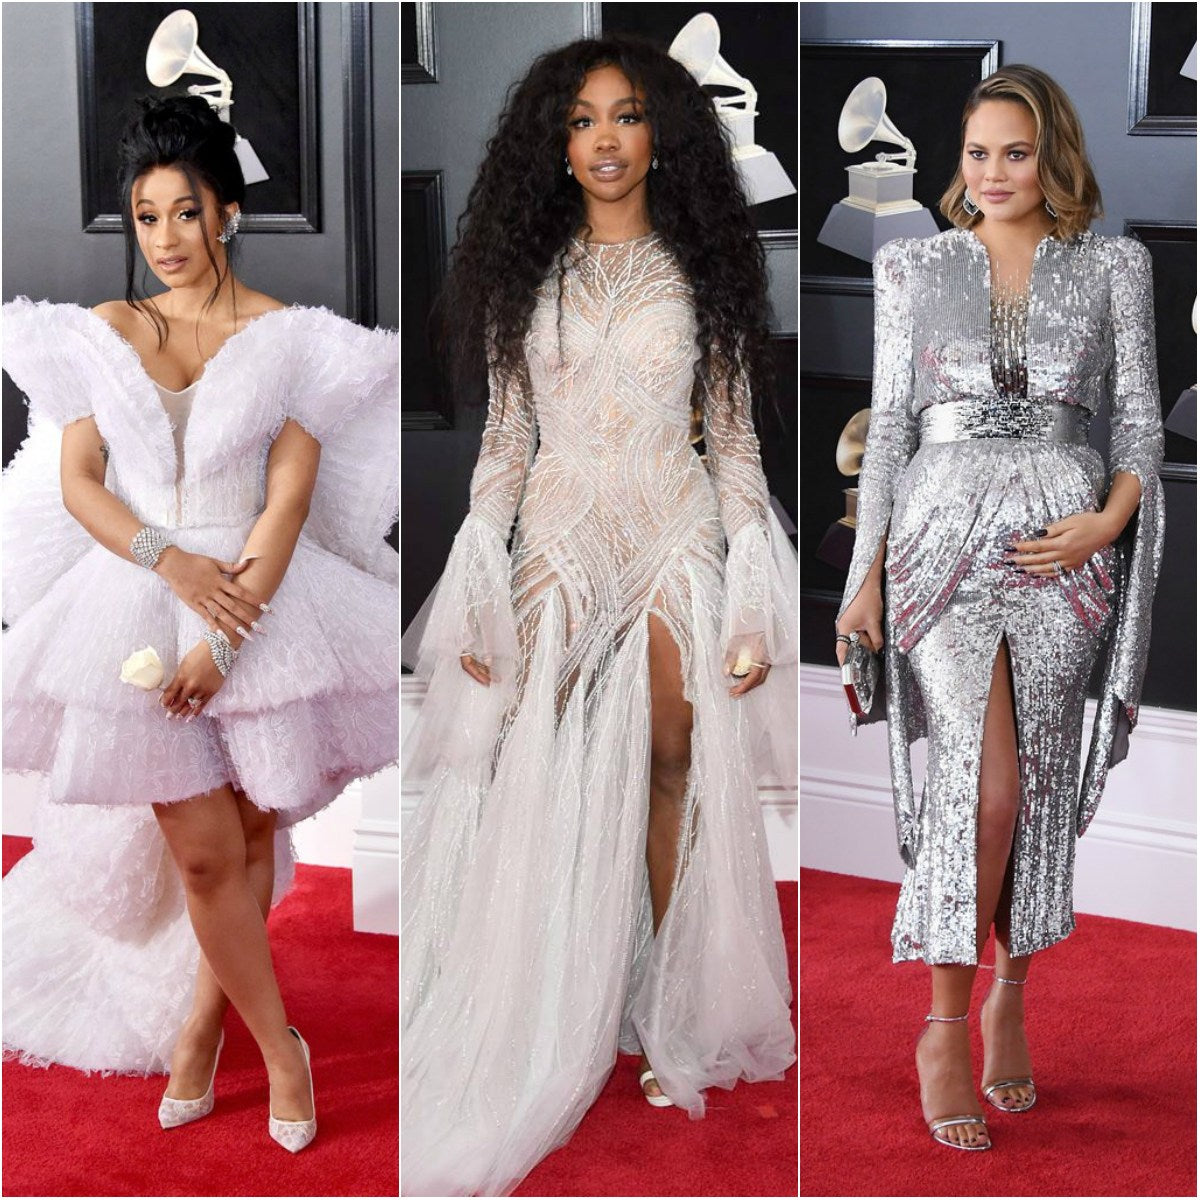 Celebrity Style Red Red Carpet Looks At This Year's Grammy's